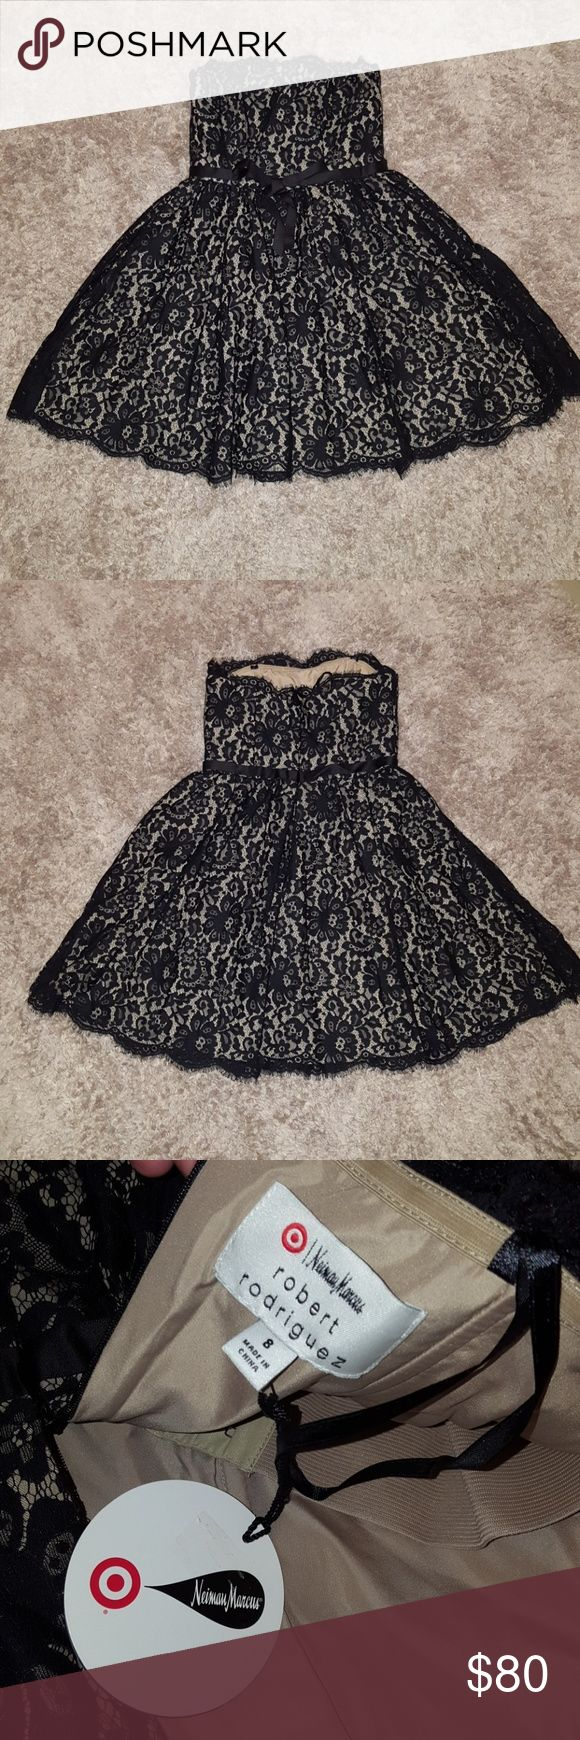 NWT Neiman Marcus dress! NWT! Neiman Marcus Robert Rodriguez dress. Size 8 with tags. Black lace detail top layer. Multi layer underneath. Zipper back. See picture for length. Wire in bodice top. Bow on the front. Super cute detail. Lovely dress!   Please ask if you need further details.  I am not responsible if clothing does not fit. Neiman Marcus Dresses Strapless